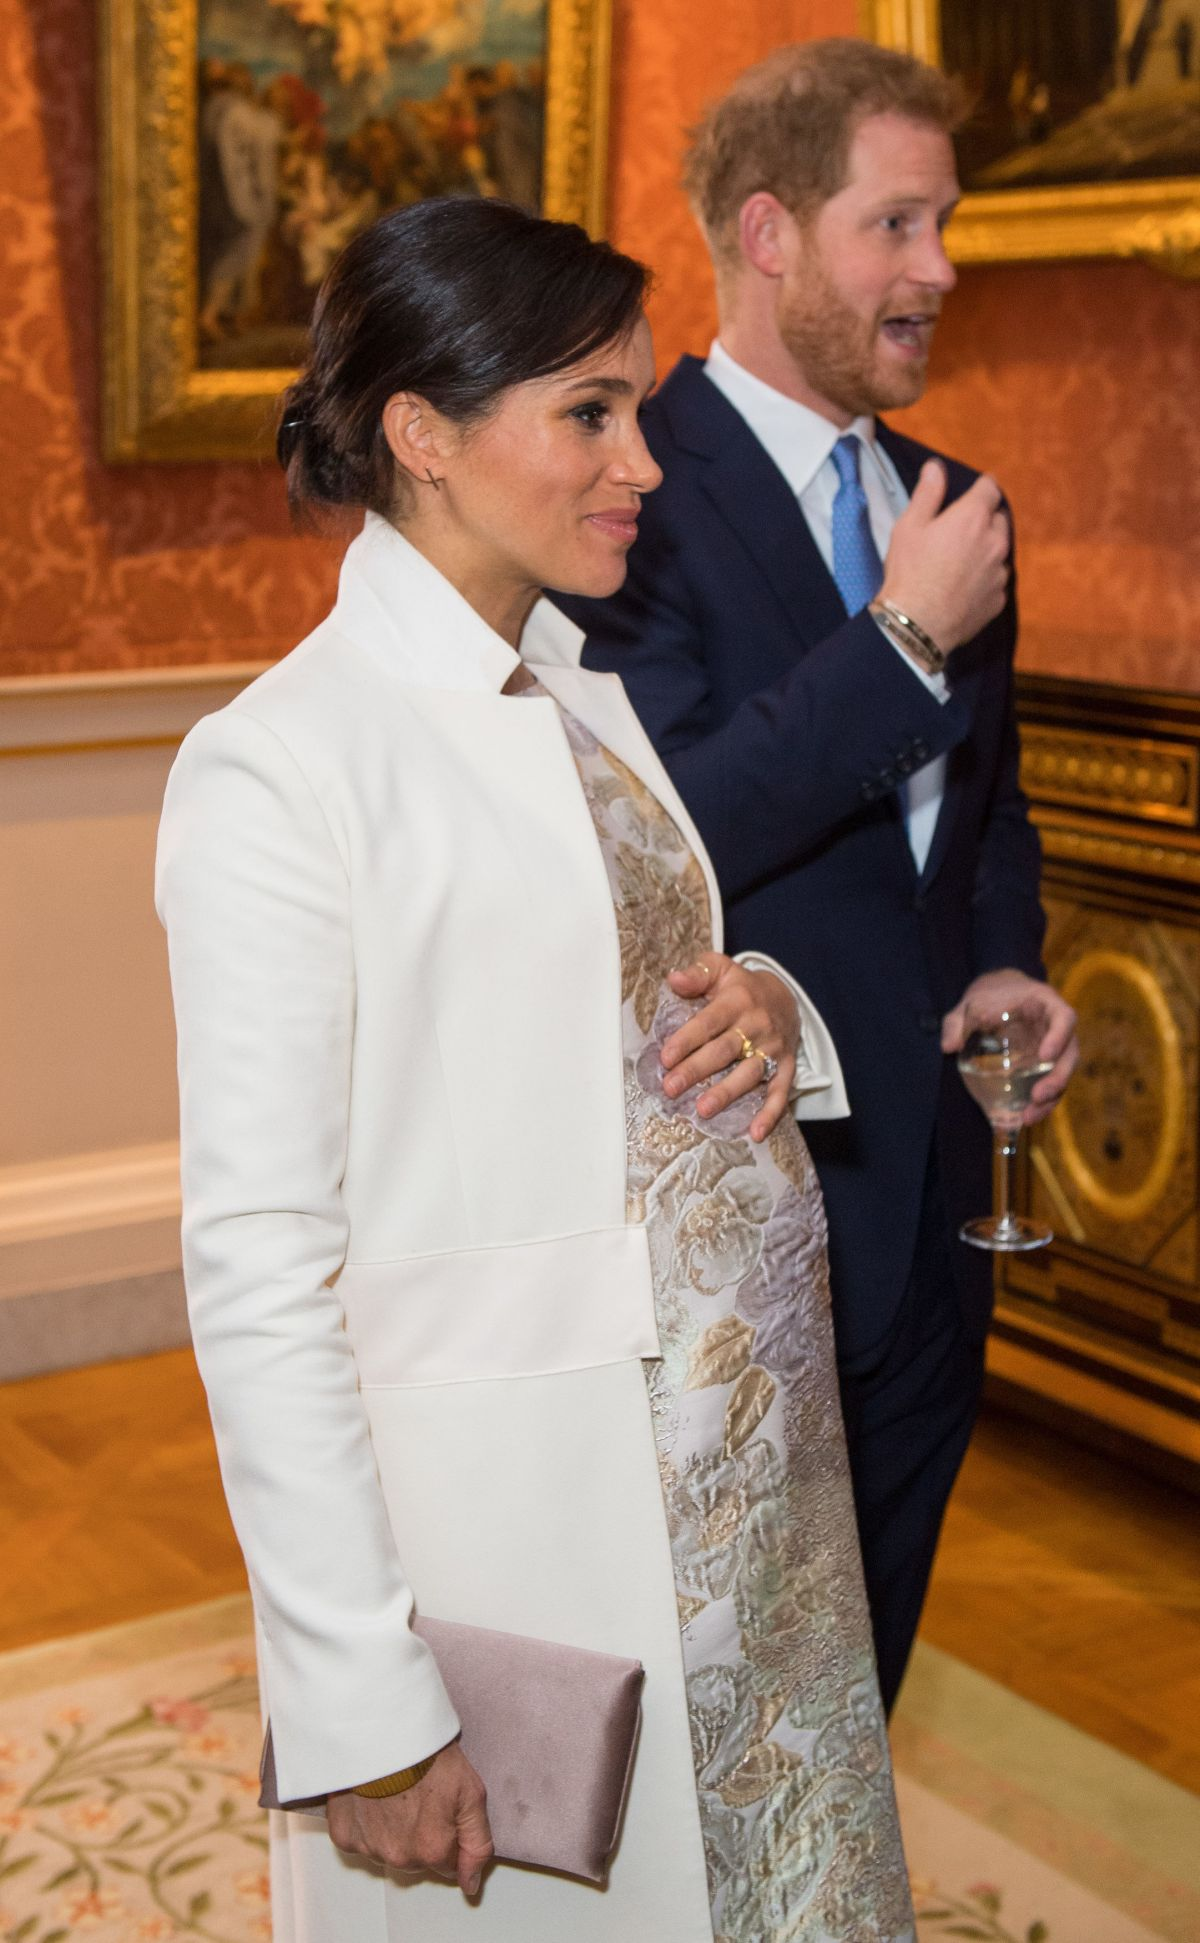 Meghan Markle Duchess of Sussex attends a reception to mark the fiftieth anniversary of the